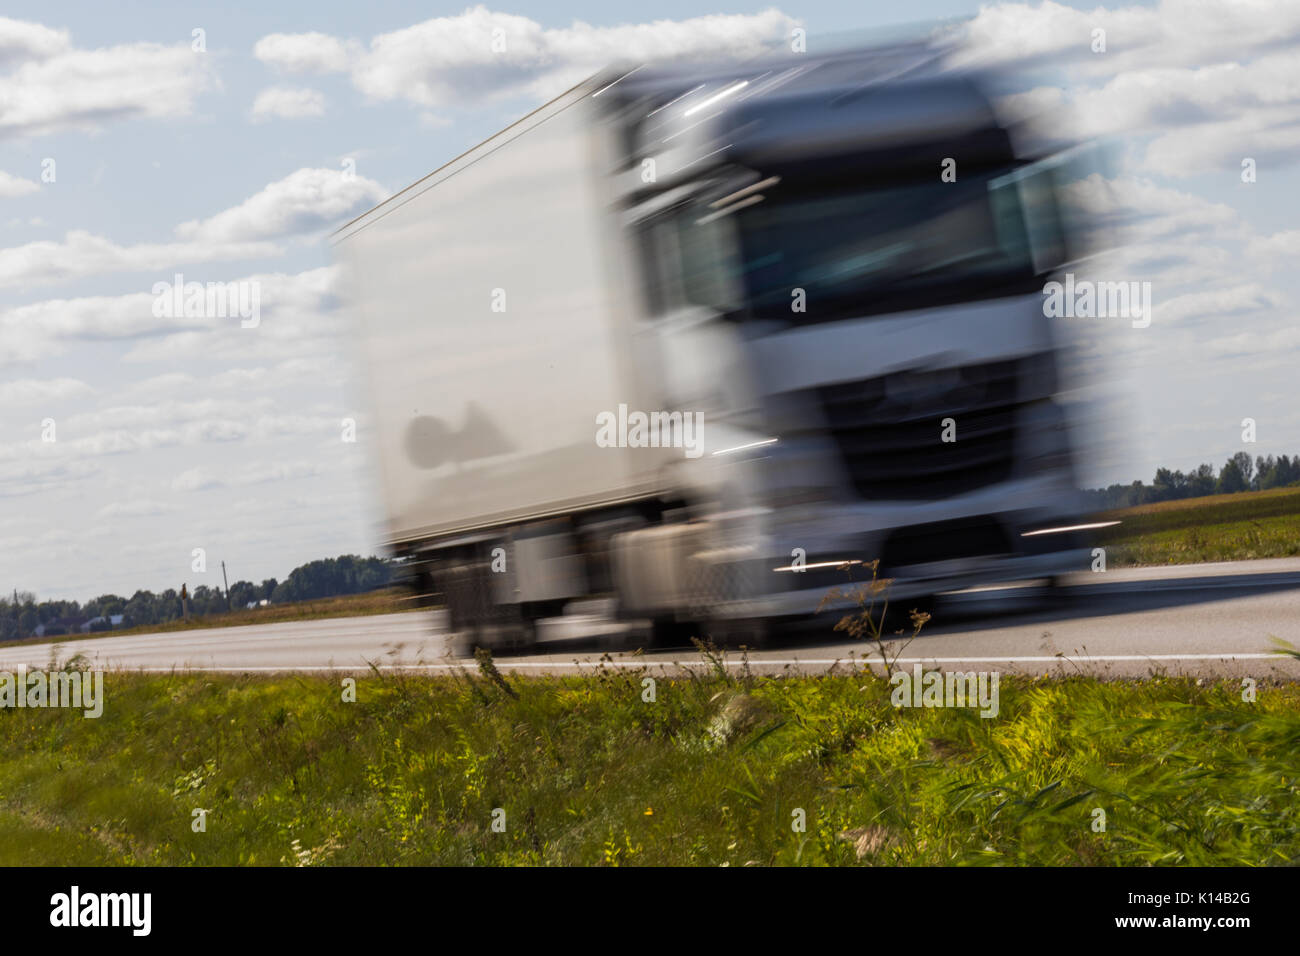 Truck Transport On The Road With Motion Blur Blurred Image Background Colorful Wallpaper